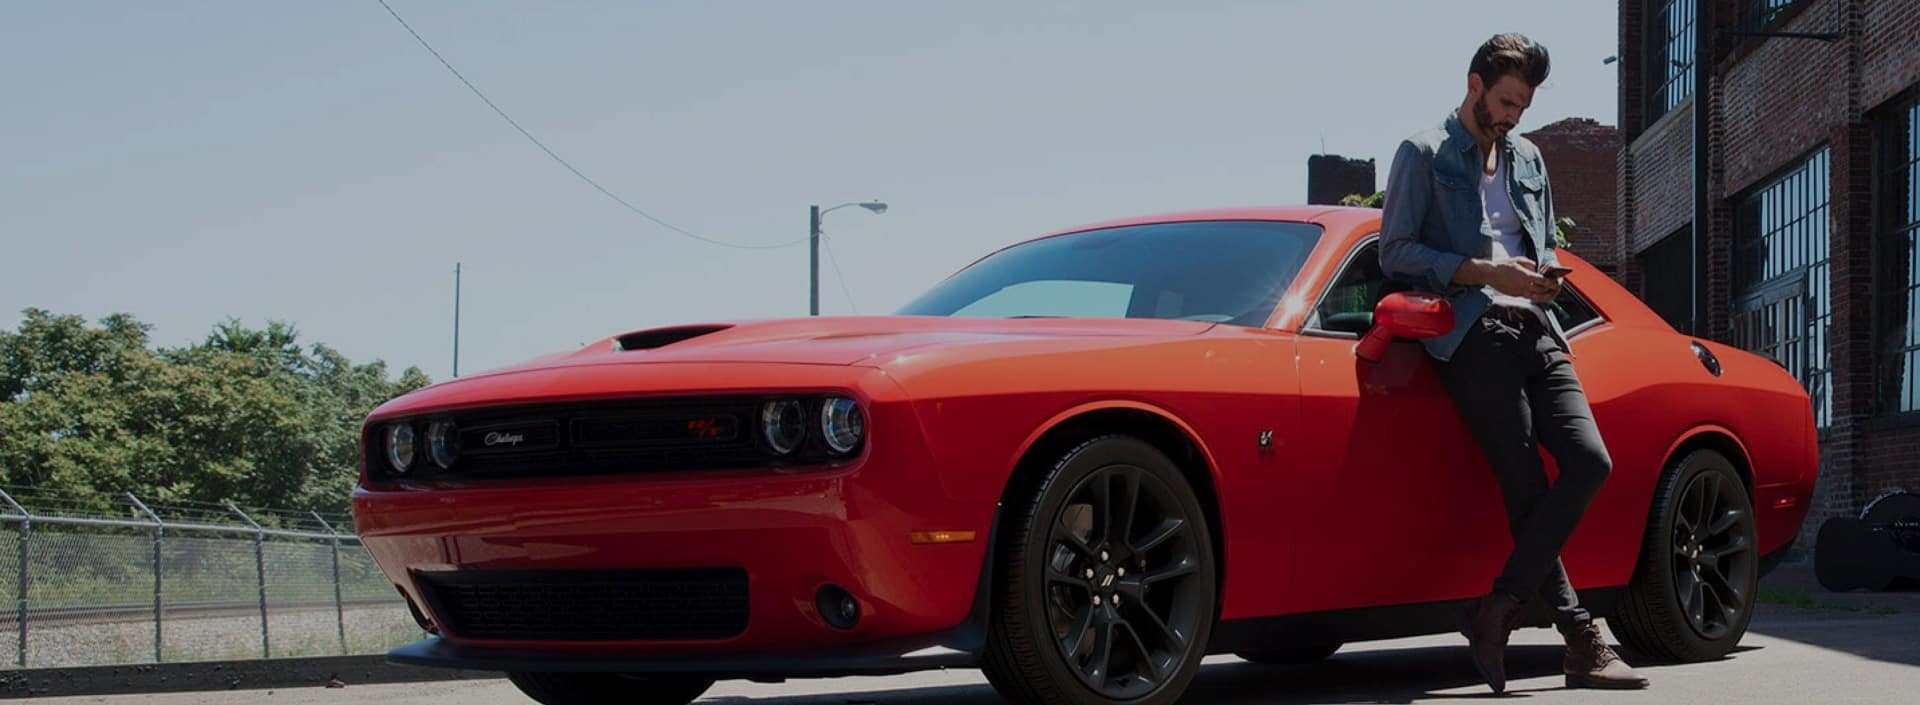 Red Dodge Challenger in Lot